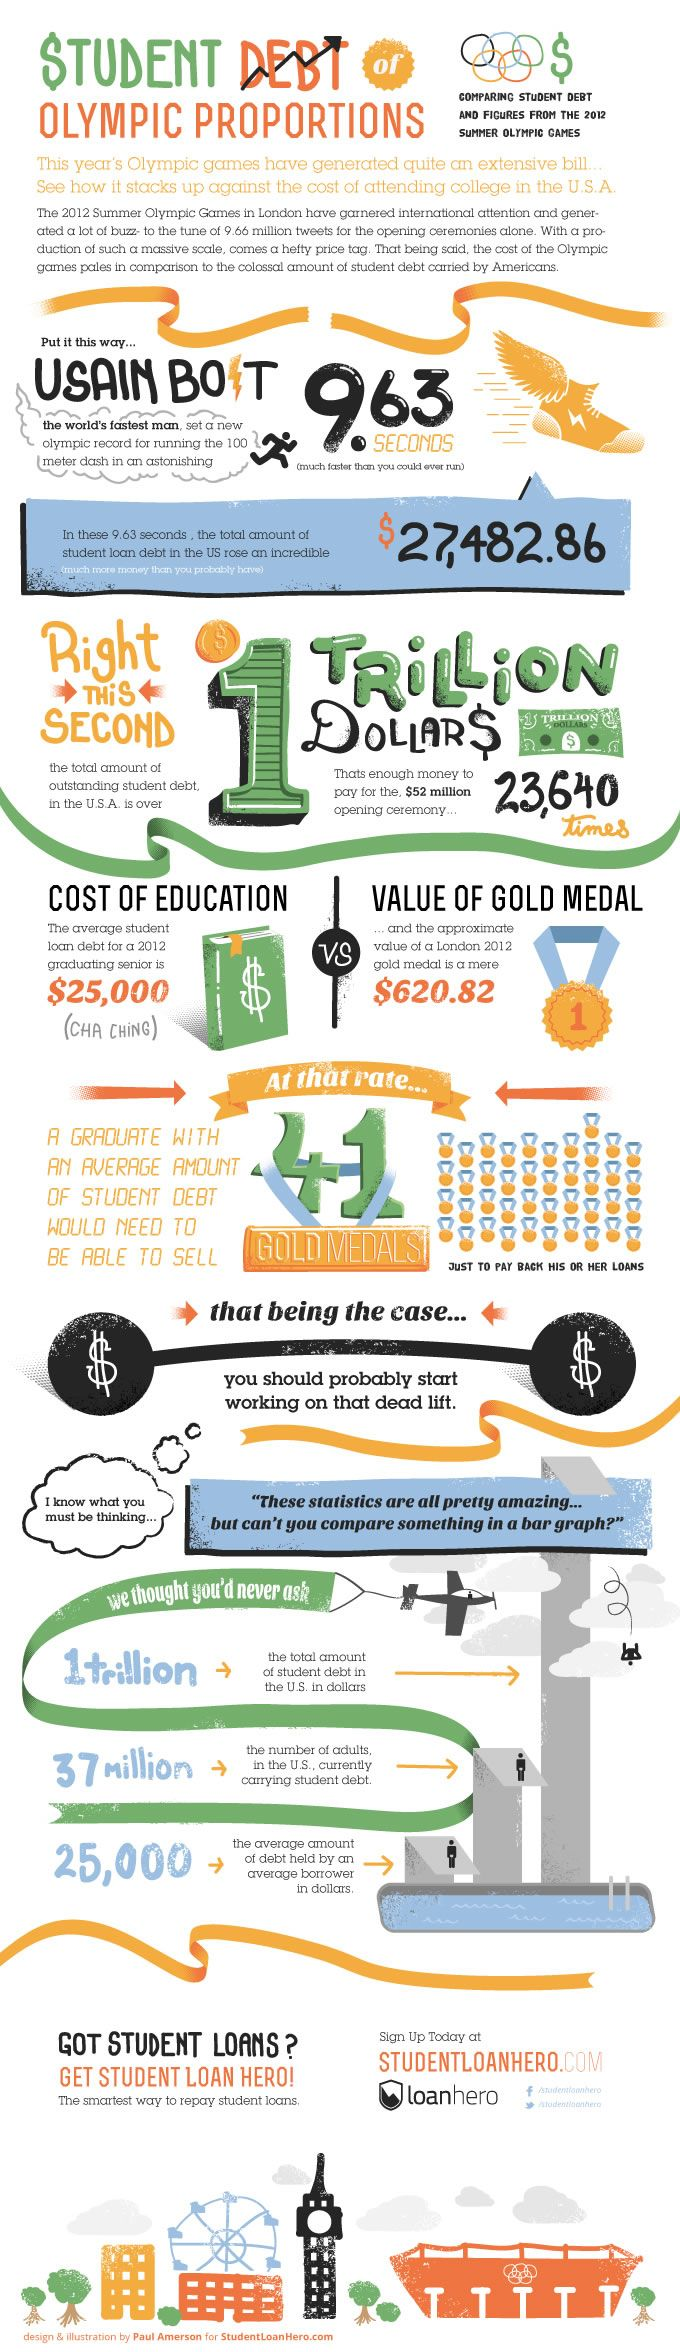 #Infographic #BusinessAndMoney #Economics #Finance  >>>  <>  >>>  Student Loan Debt of Olympic Proportions!